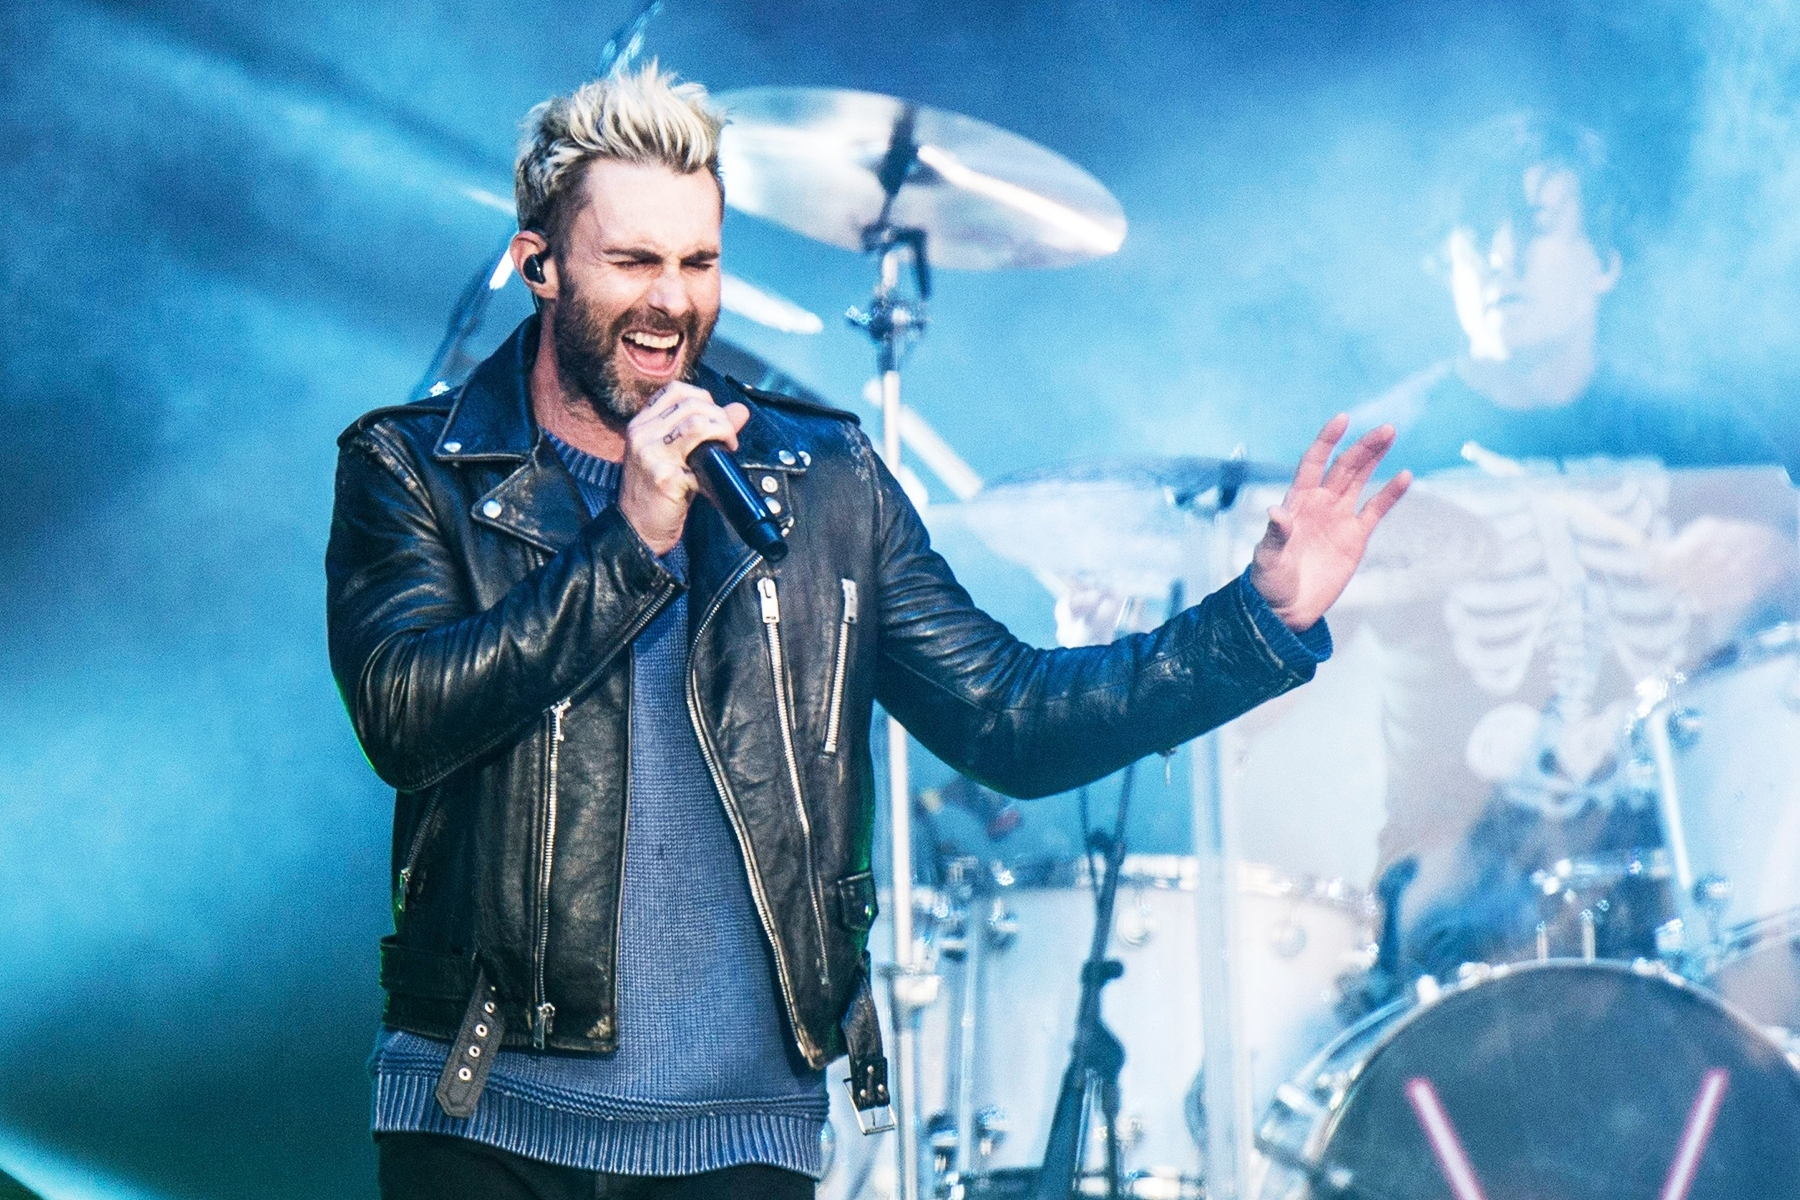 Maroon 5 To Play Super Bowl Liii Halftime Show In 2019 intended for Maroon 5 Super Bowl Liii